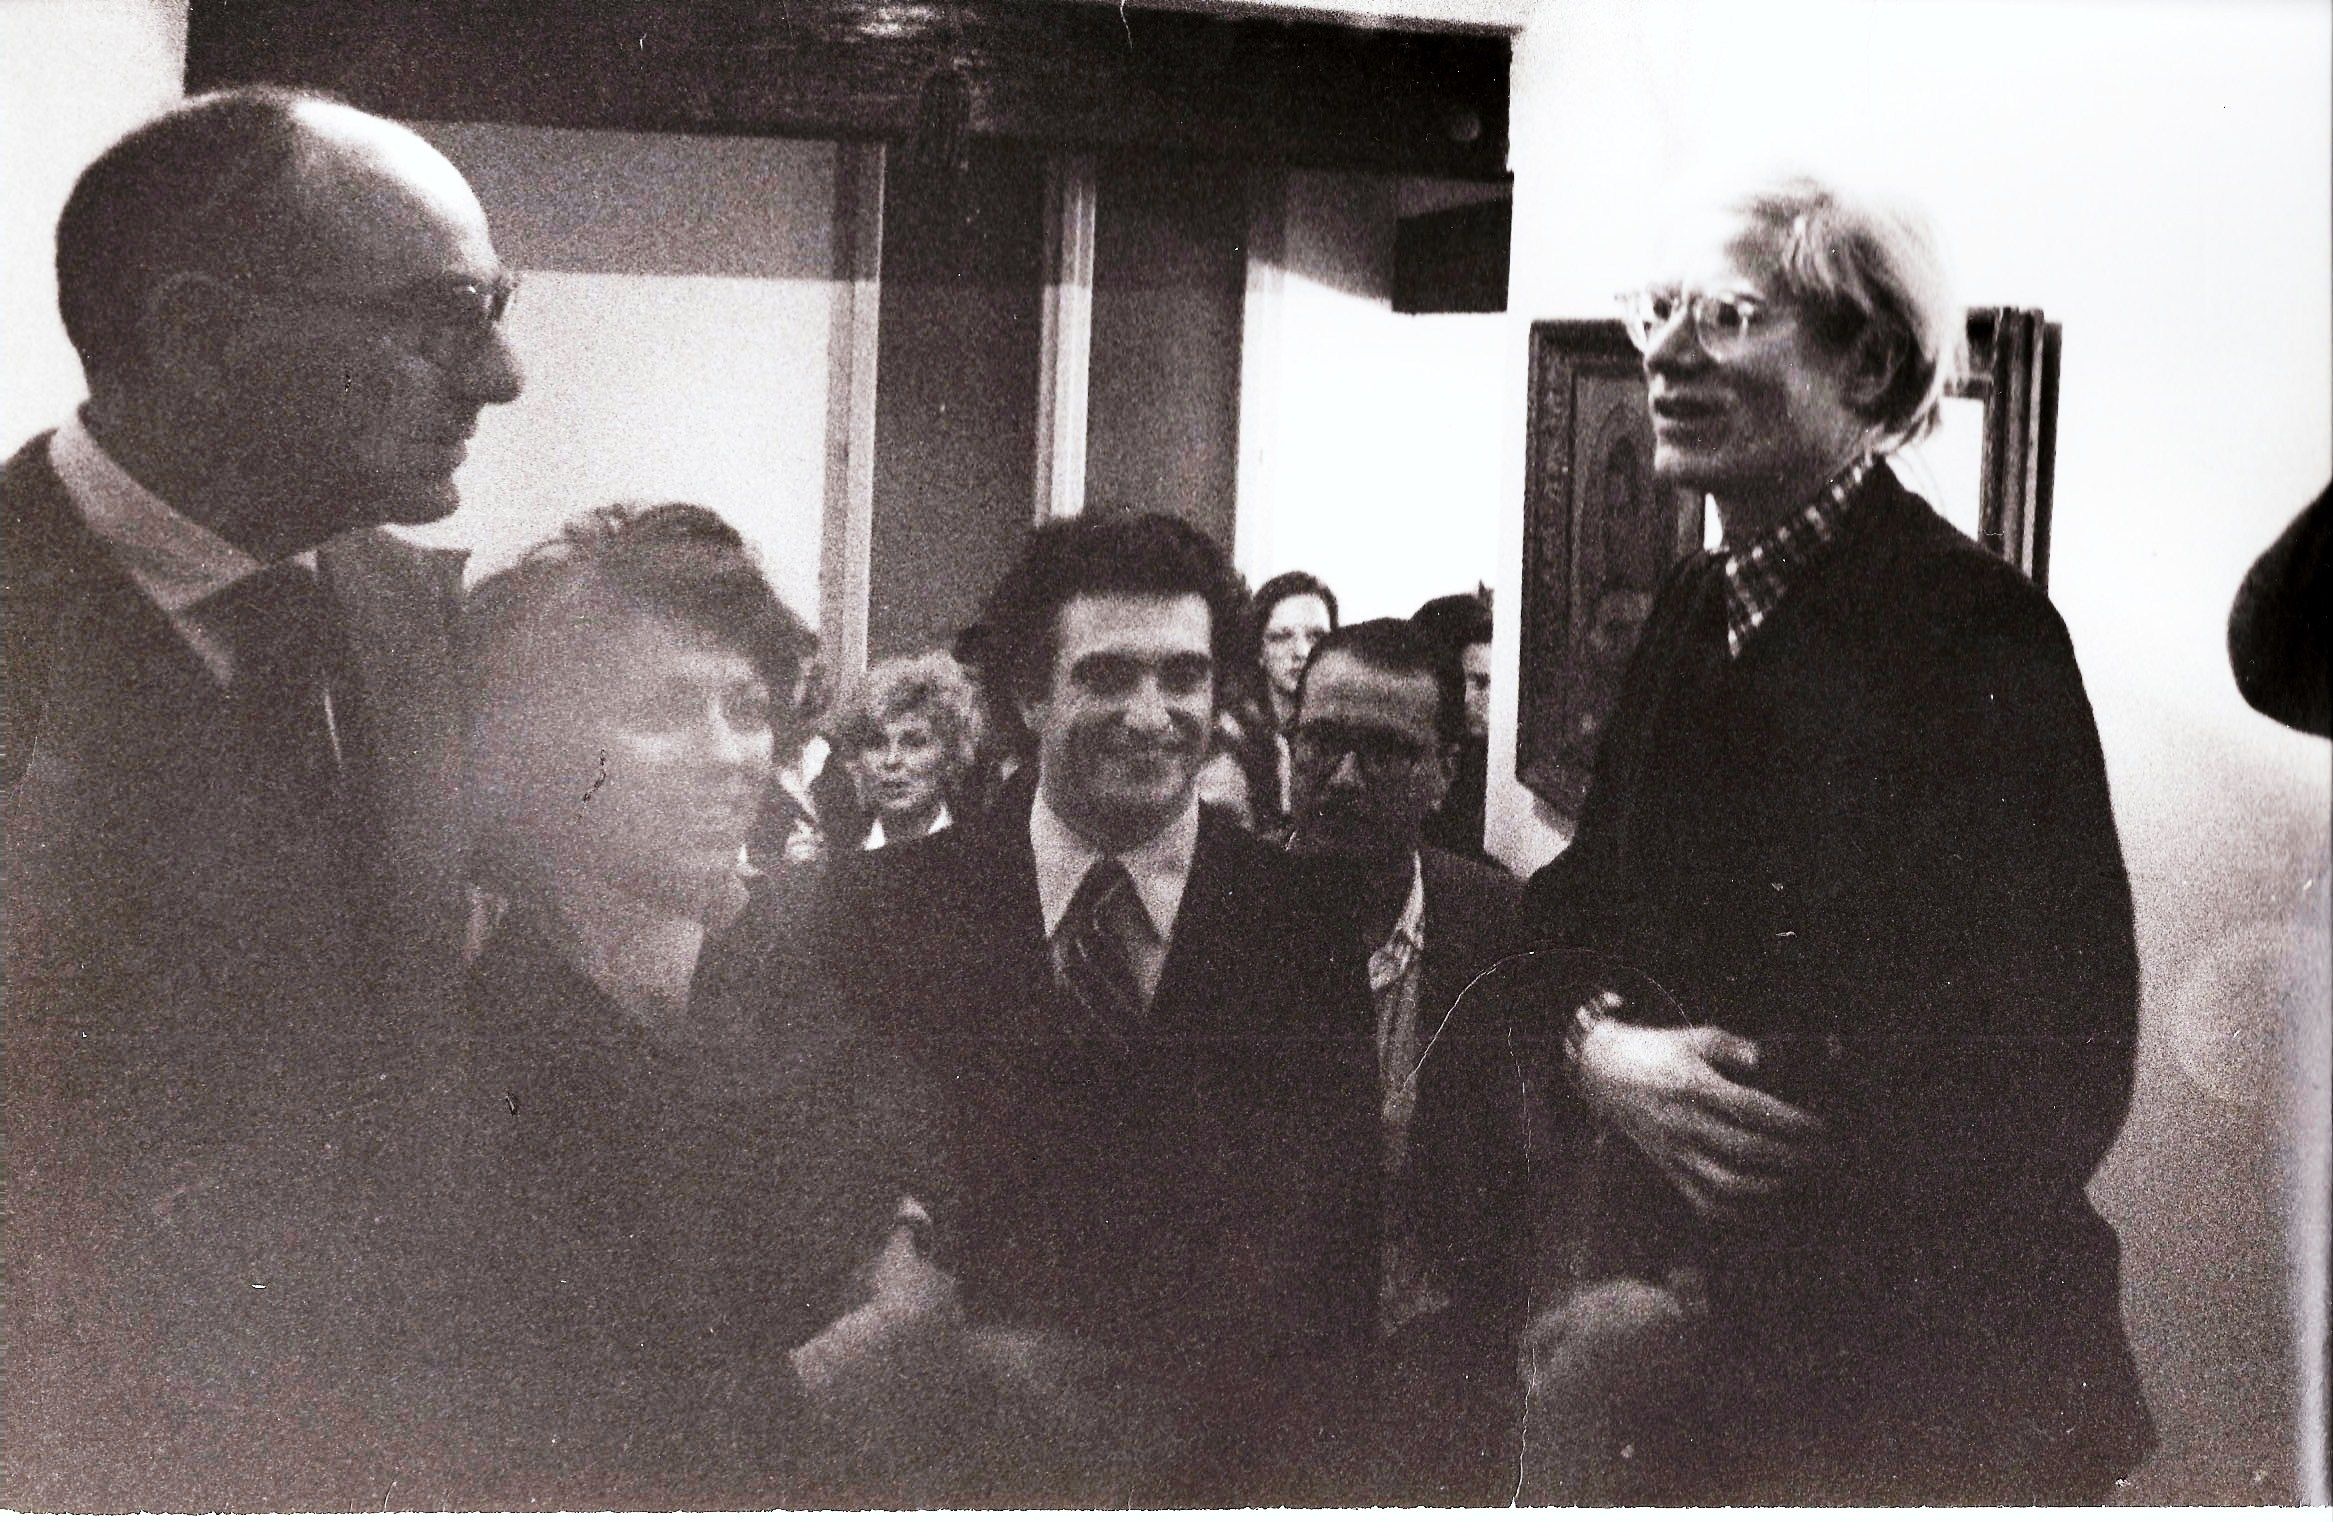 Franco Farina, Totto Carrà, Raffaele Torelli con Andy Warhol. Ferrara, 1974. Party in casa.